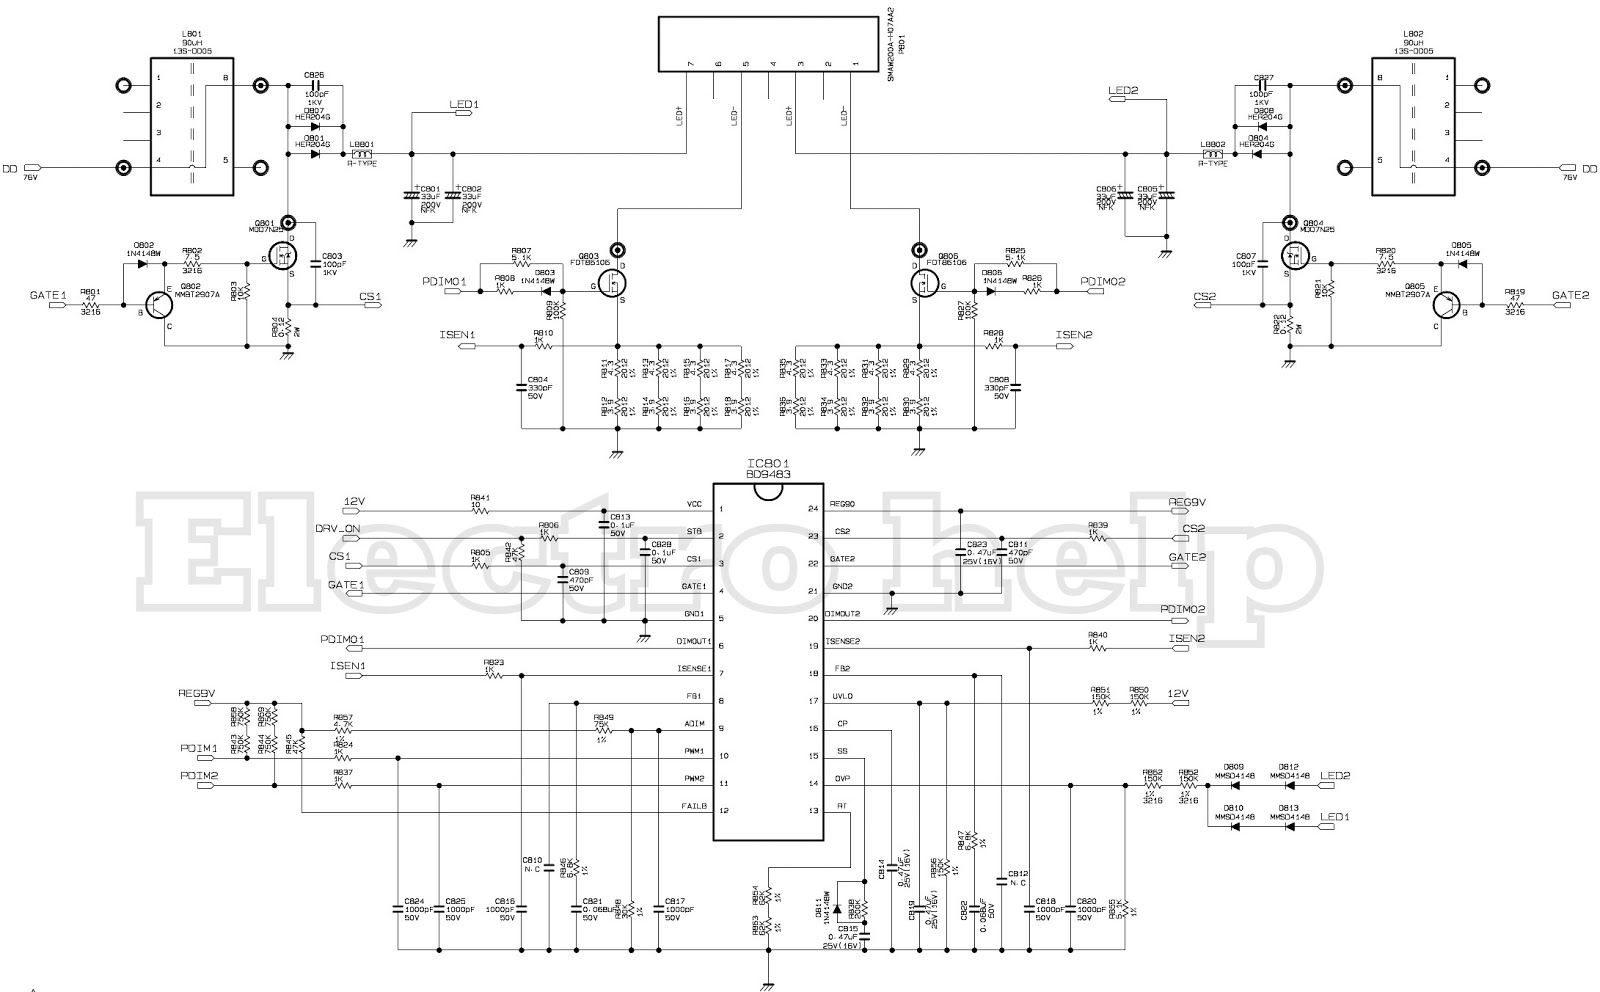 LG POWER SUPPLY  EAY62810801  SCHEMATIC  LED LCD TV